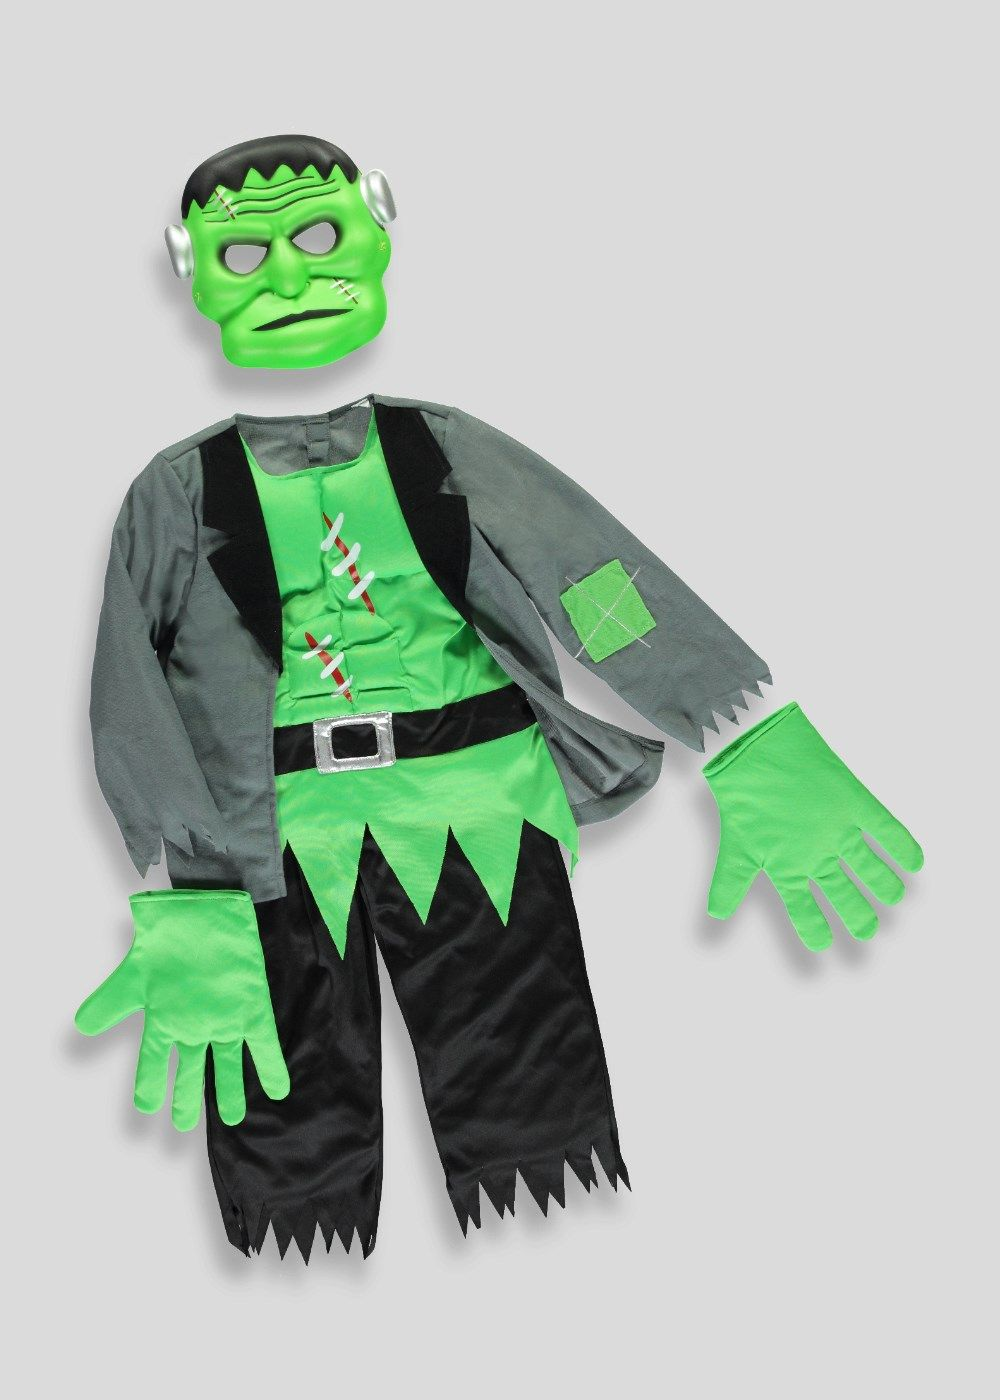 Matalan have tons of costumes for children and adults this Halloween. & Matalan have tons of costumes for children and adults this Halloween ...